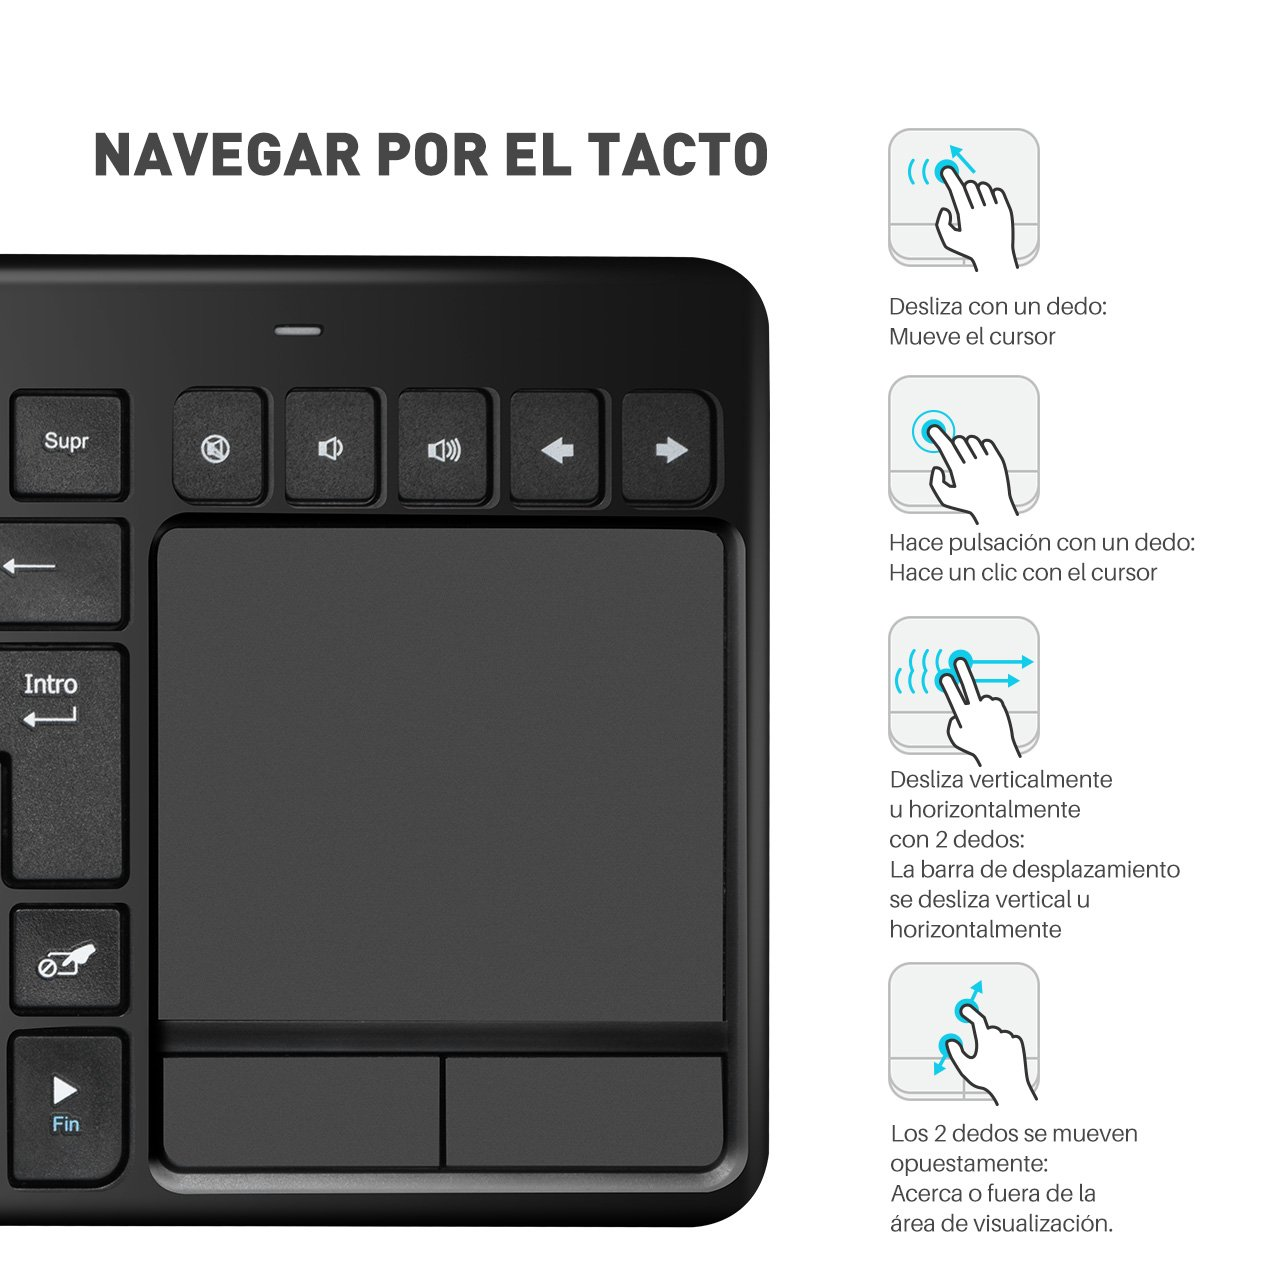 VICTSING Ultra Delgada Mini Teclado Inalámbrico Touchpad con 2.4G B Receptor, QWERTY Español Incluye Ñ para PC/Laptops/Tablet/Smart TV/Portátil – Negro: Amazon.es: Informática